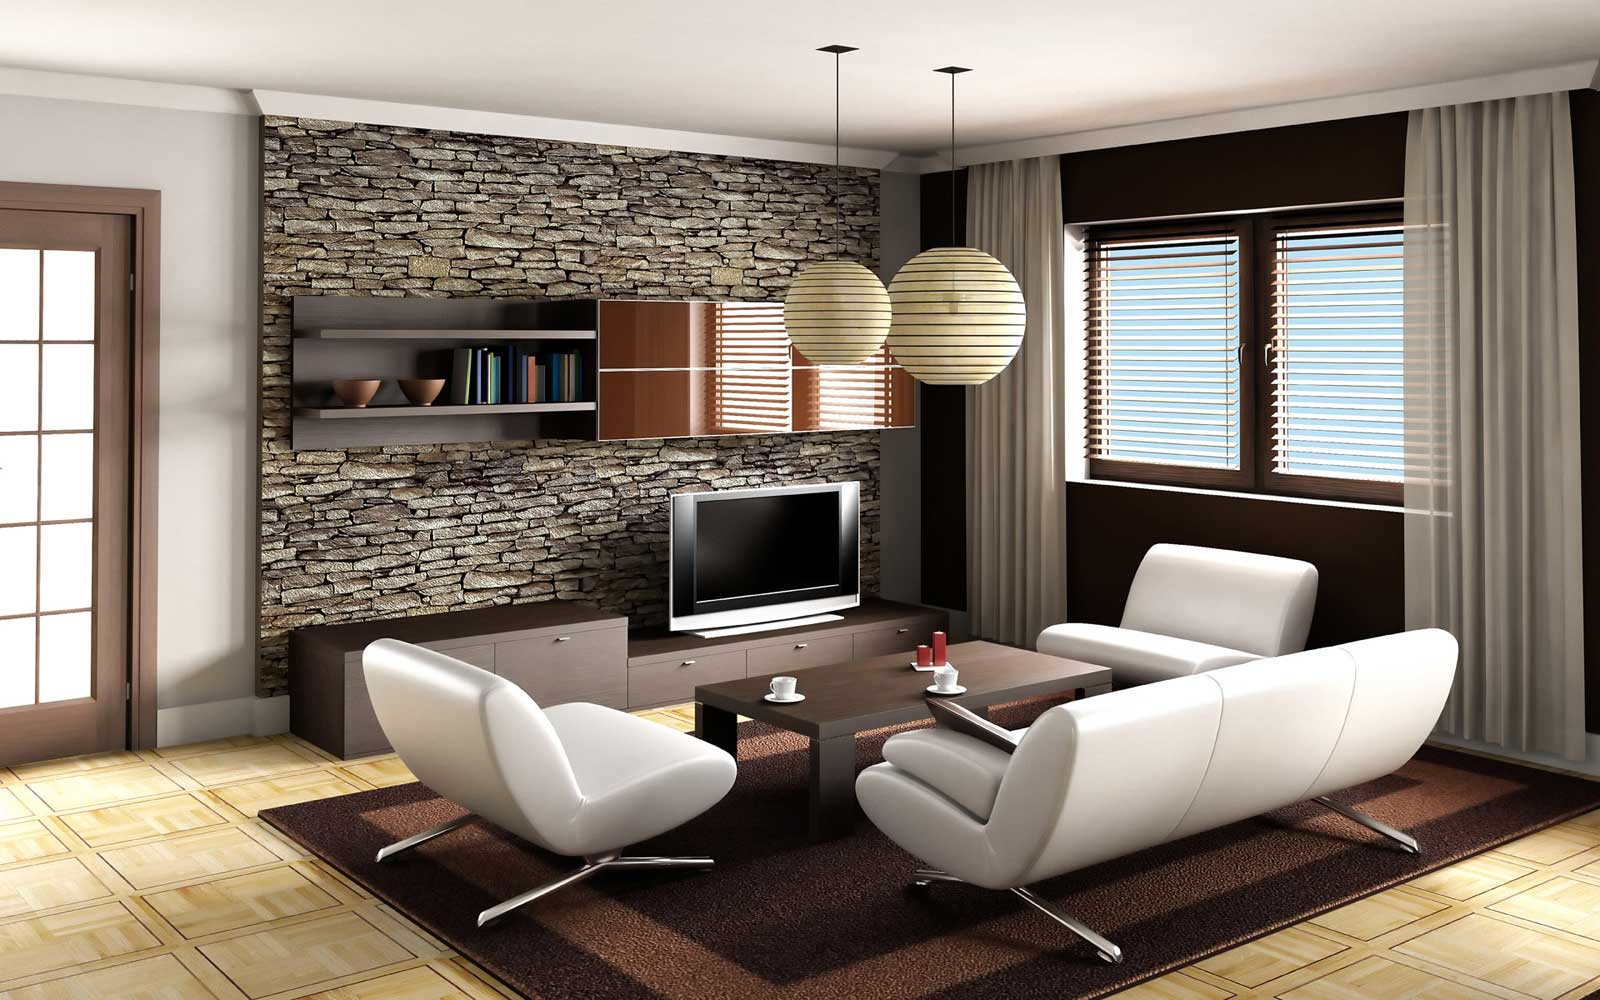 Beautiful Living Room Ideas Decor With Living Room Decor Ideas With Modern Design Using White Sofa And Stone Wall Decoration Completed With Wooden TV Cabinet